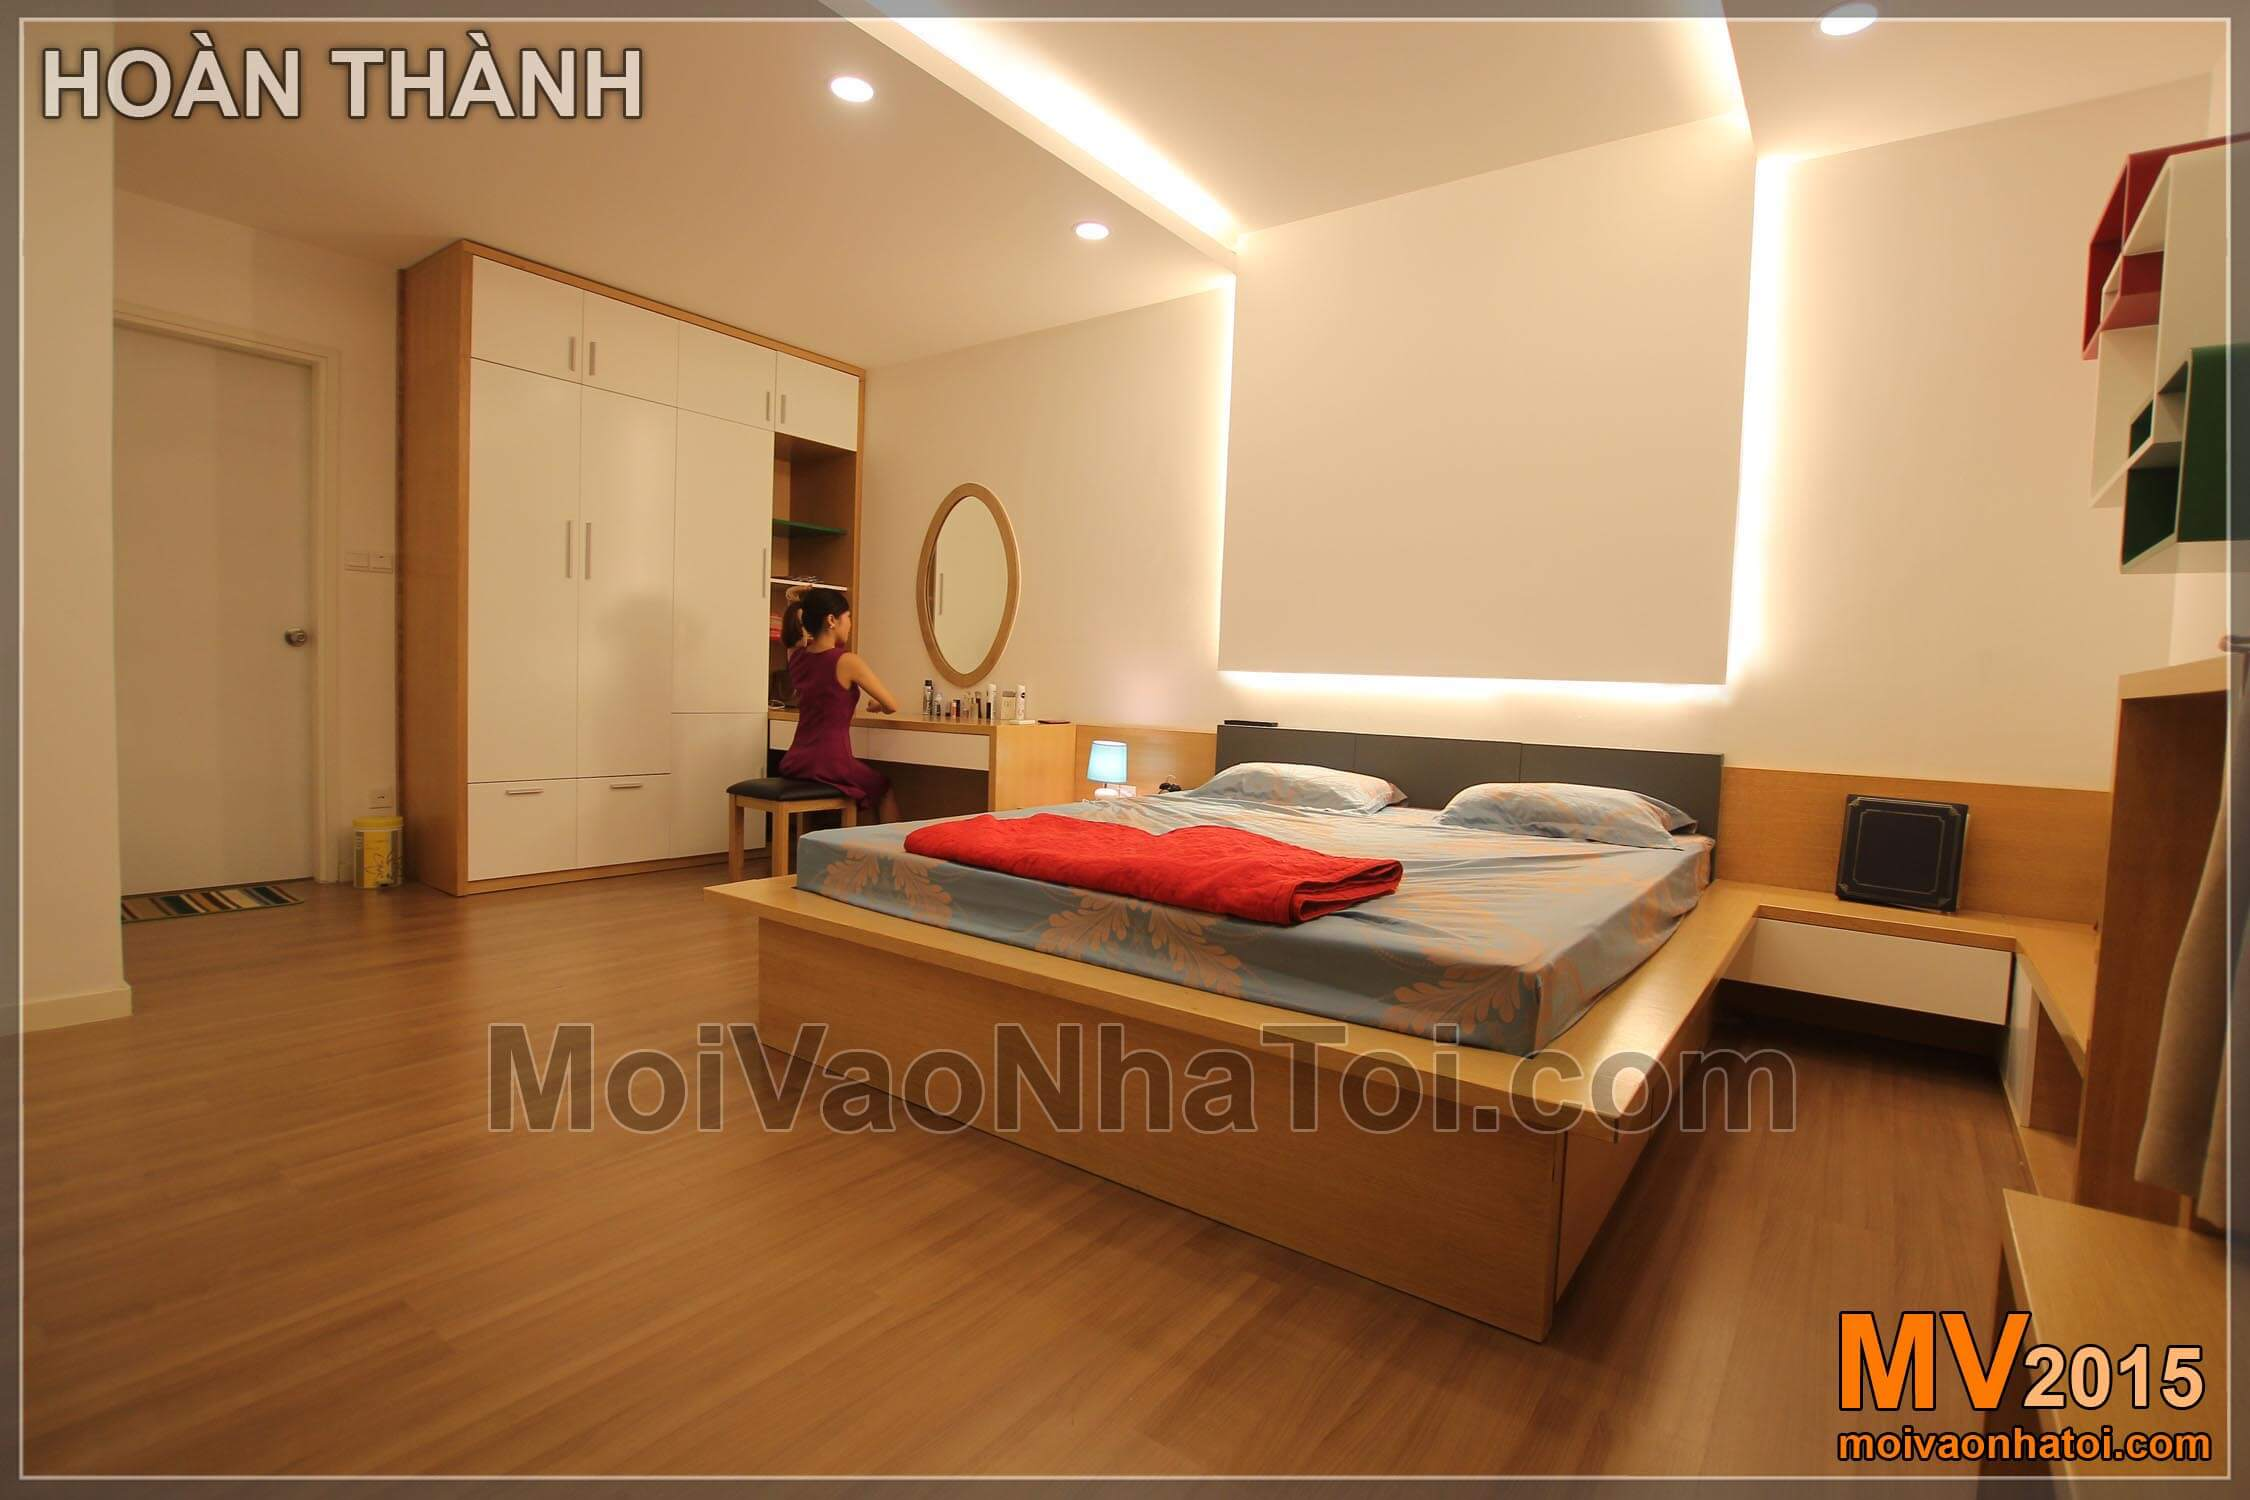 bedroom, parents complete mulberry lane, 120m2 apartment design